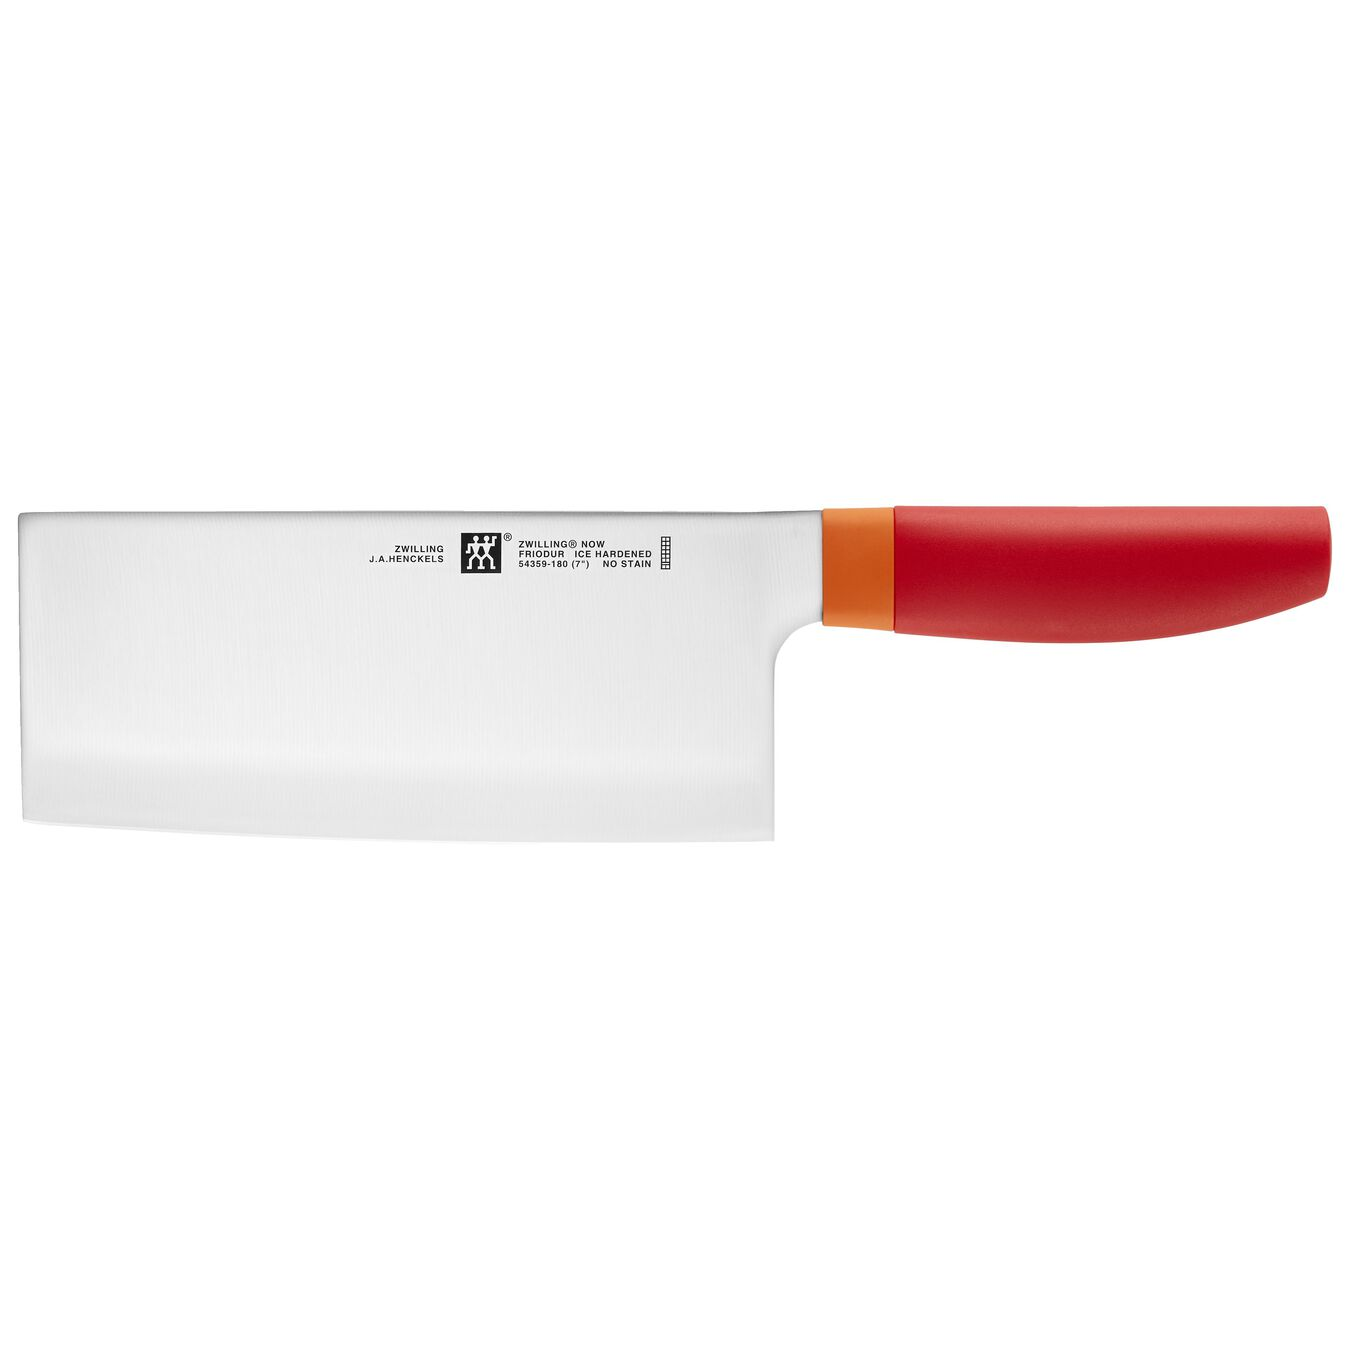 7 inch Chef's knife,,large 1